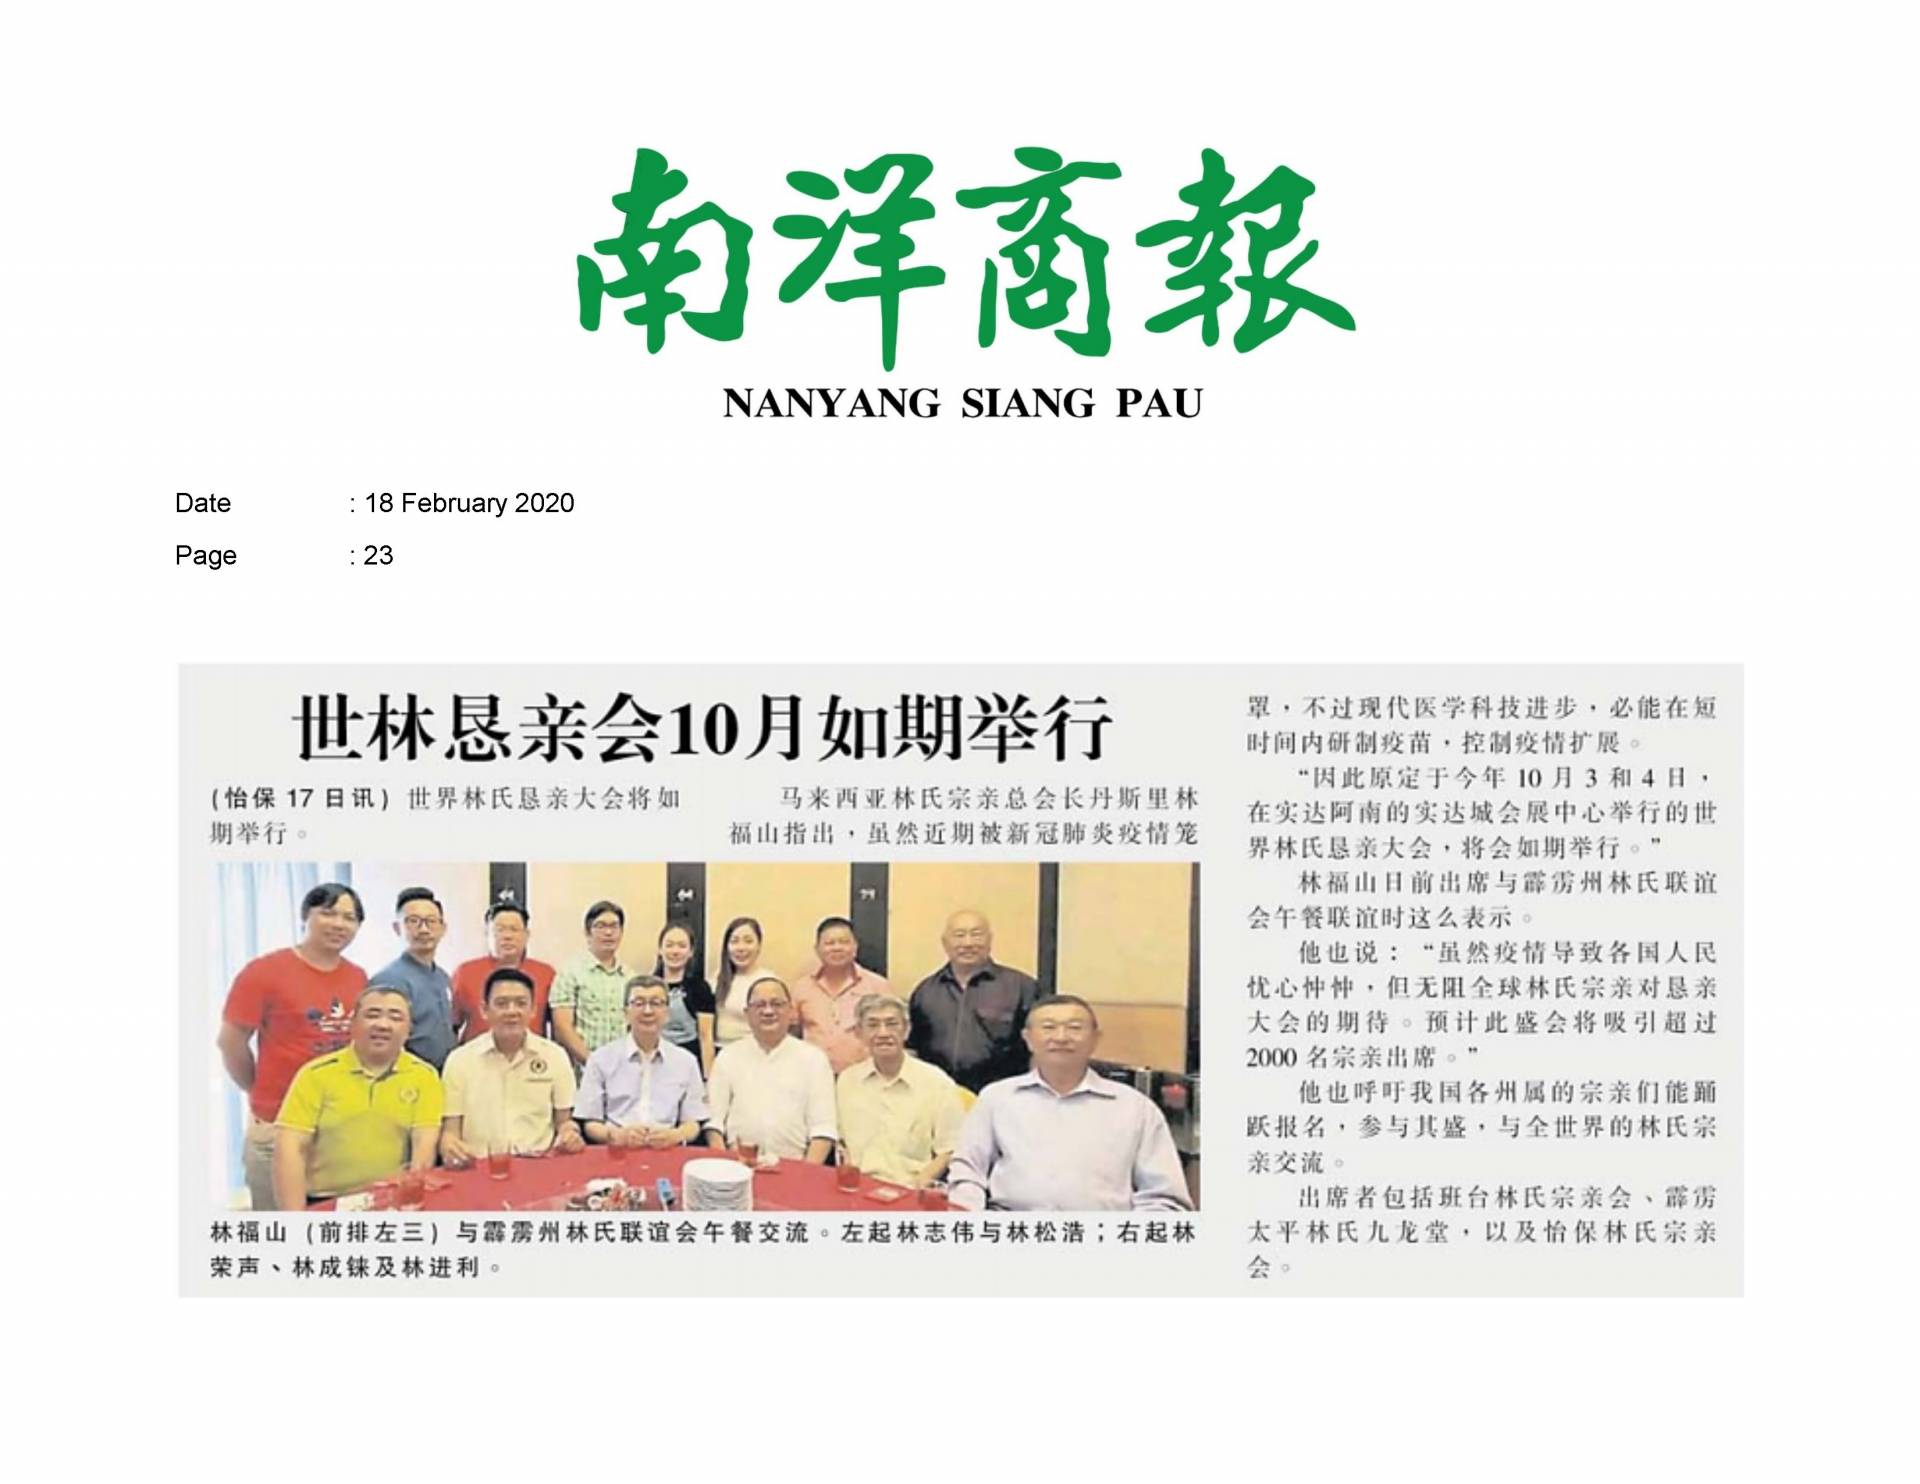 2020.02.18 Nanyang - World Lim_s Association general meeting to be held in Oct as scheduled